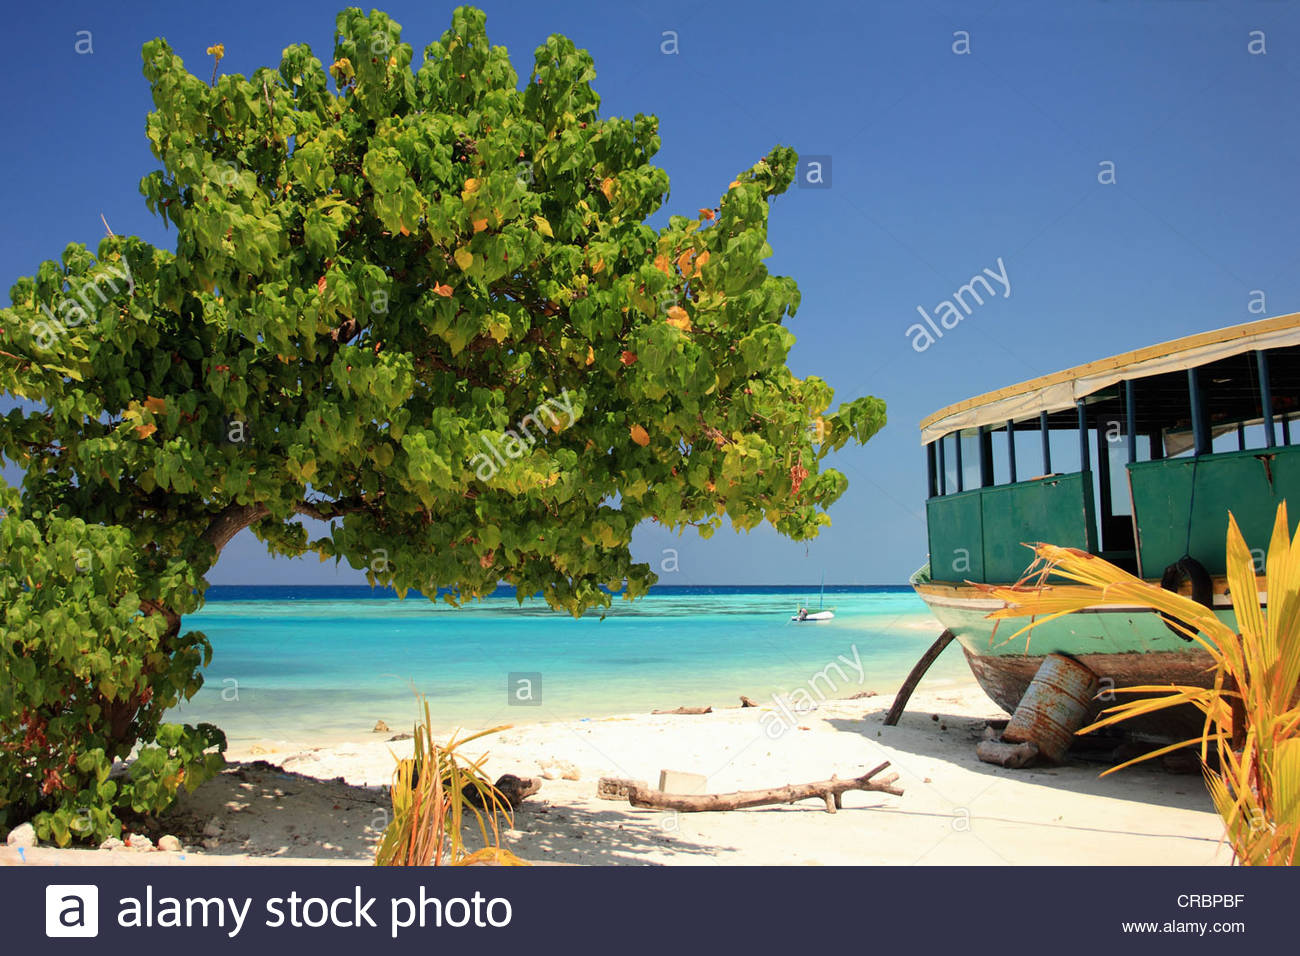 Boat docked on tropical beach - Stock Image